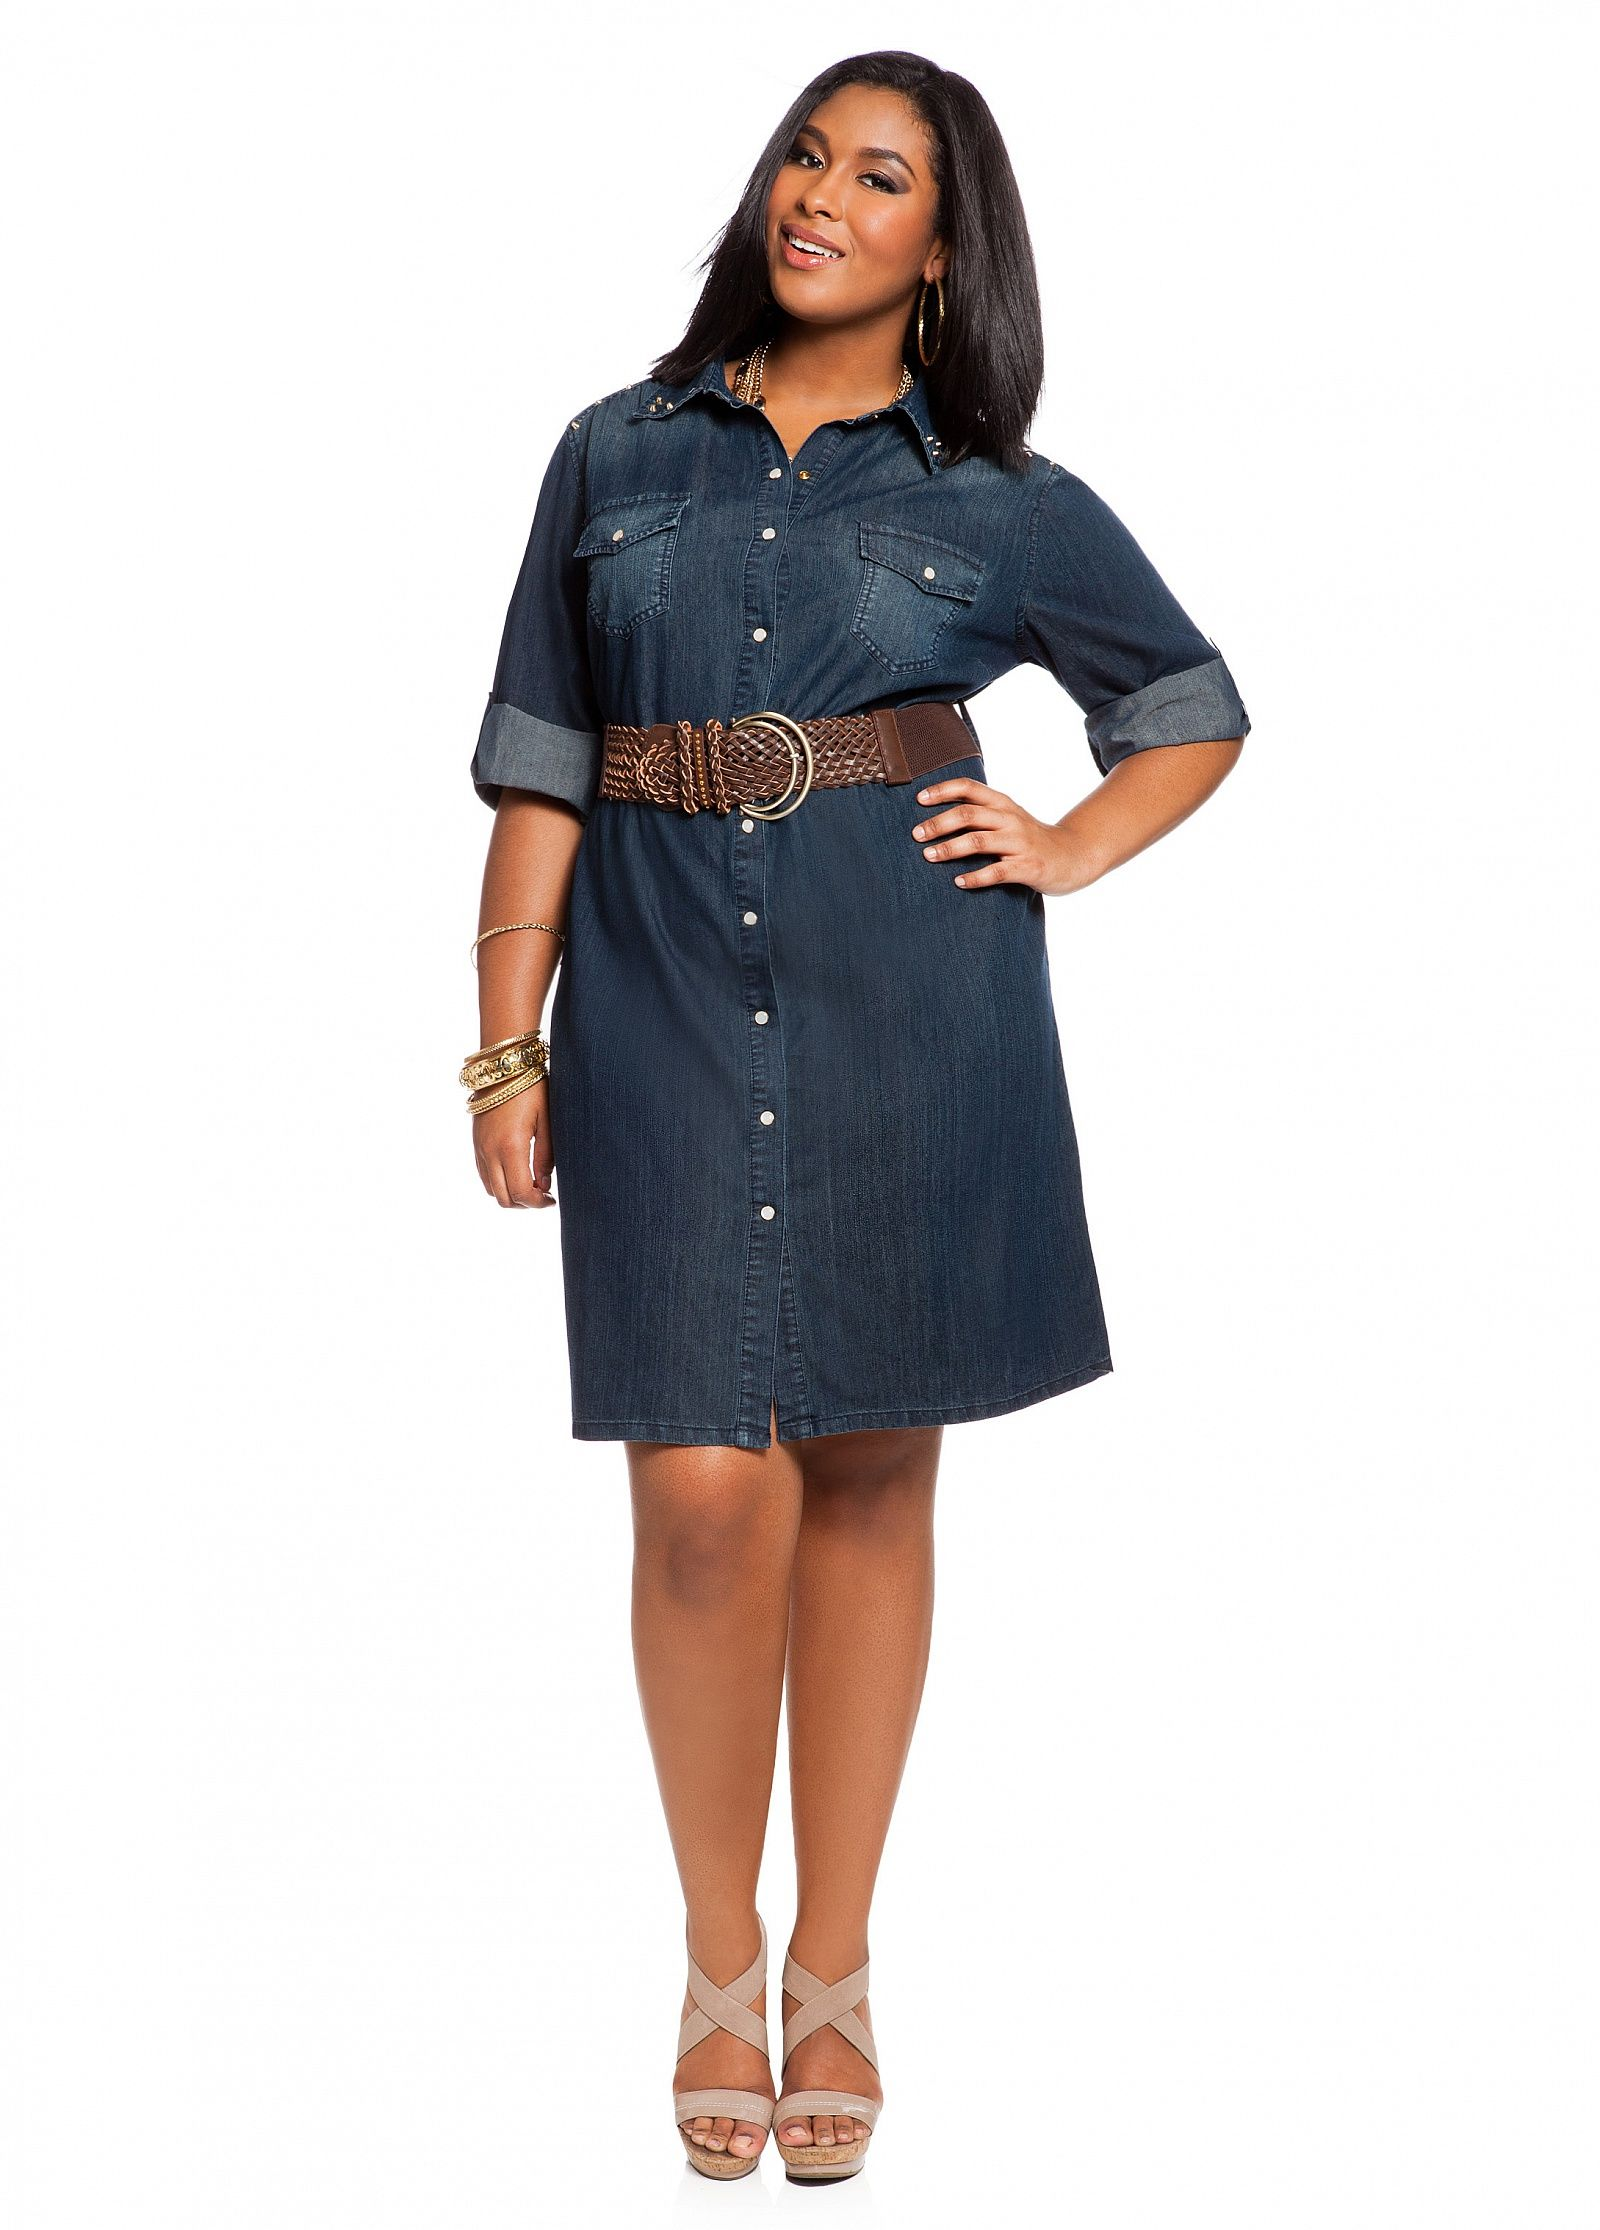 ace9a3769d23a Ashley Stewart  Denim Shirt Plus Size Dress